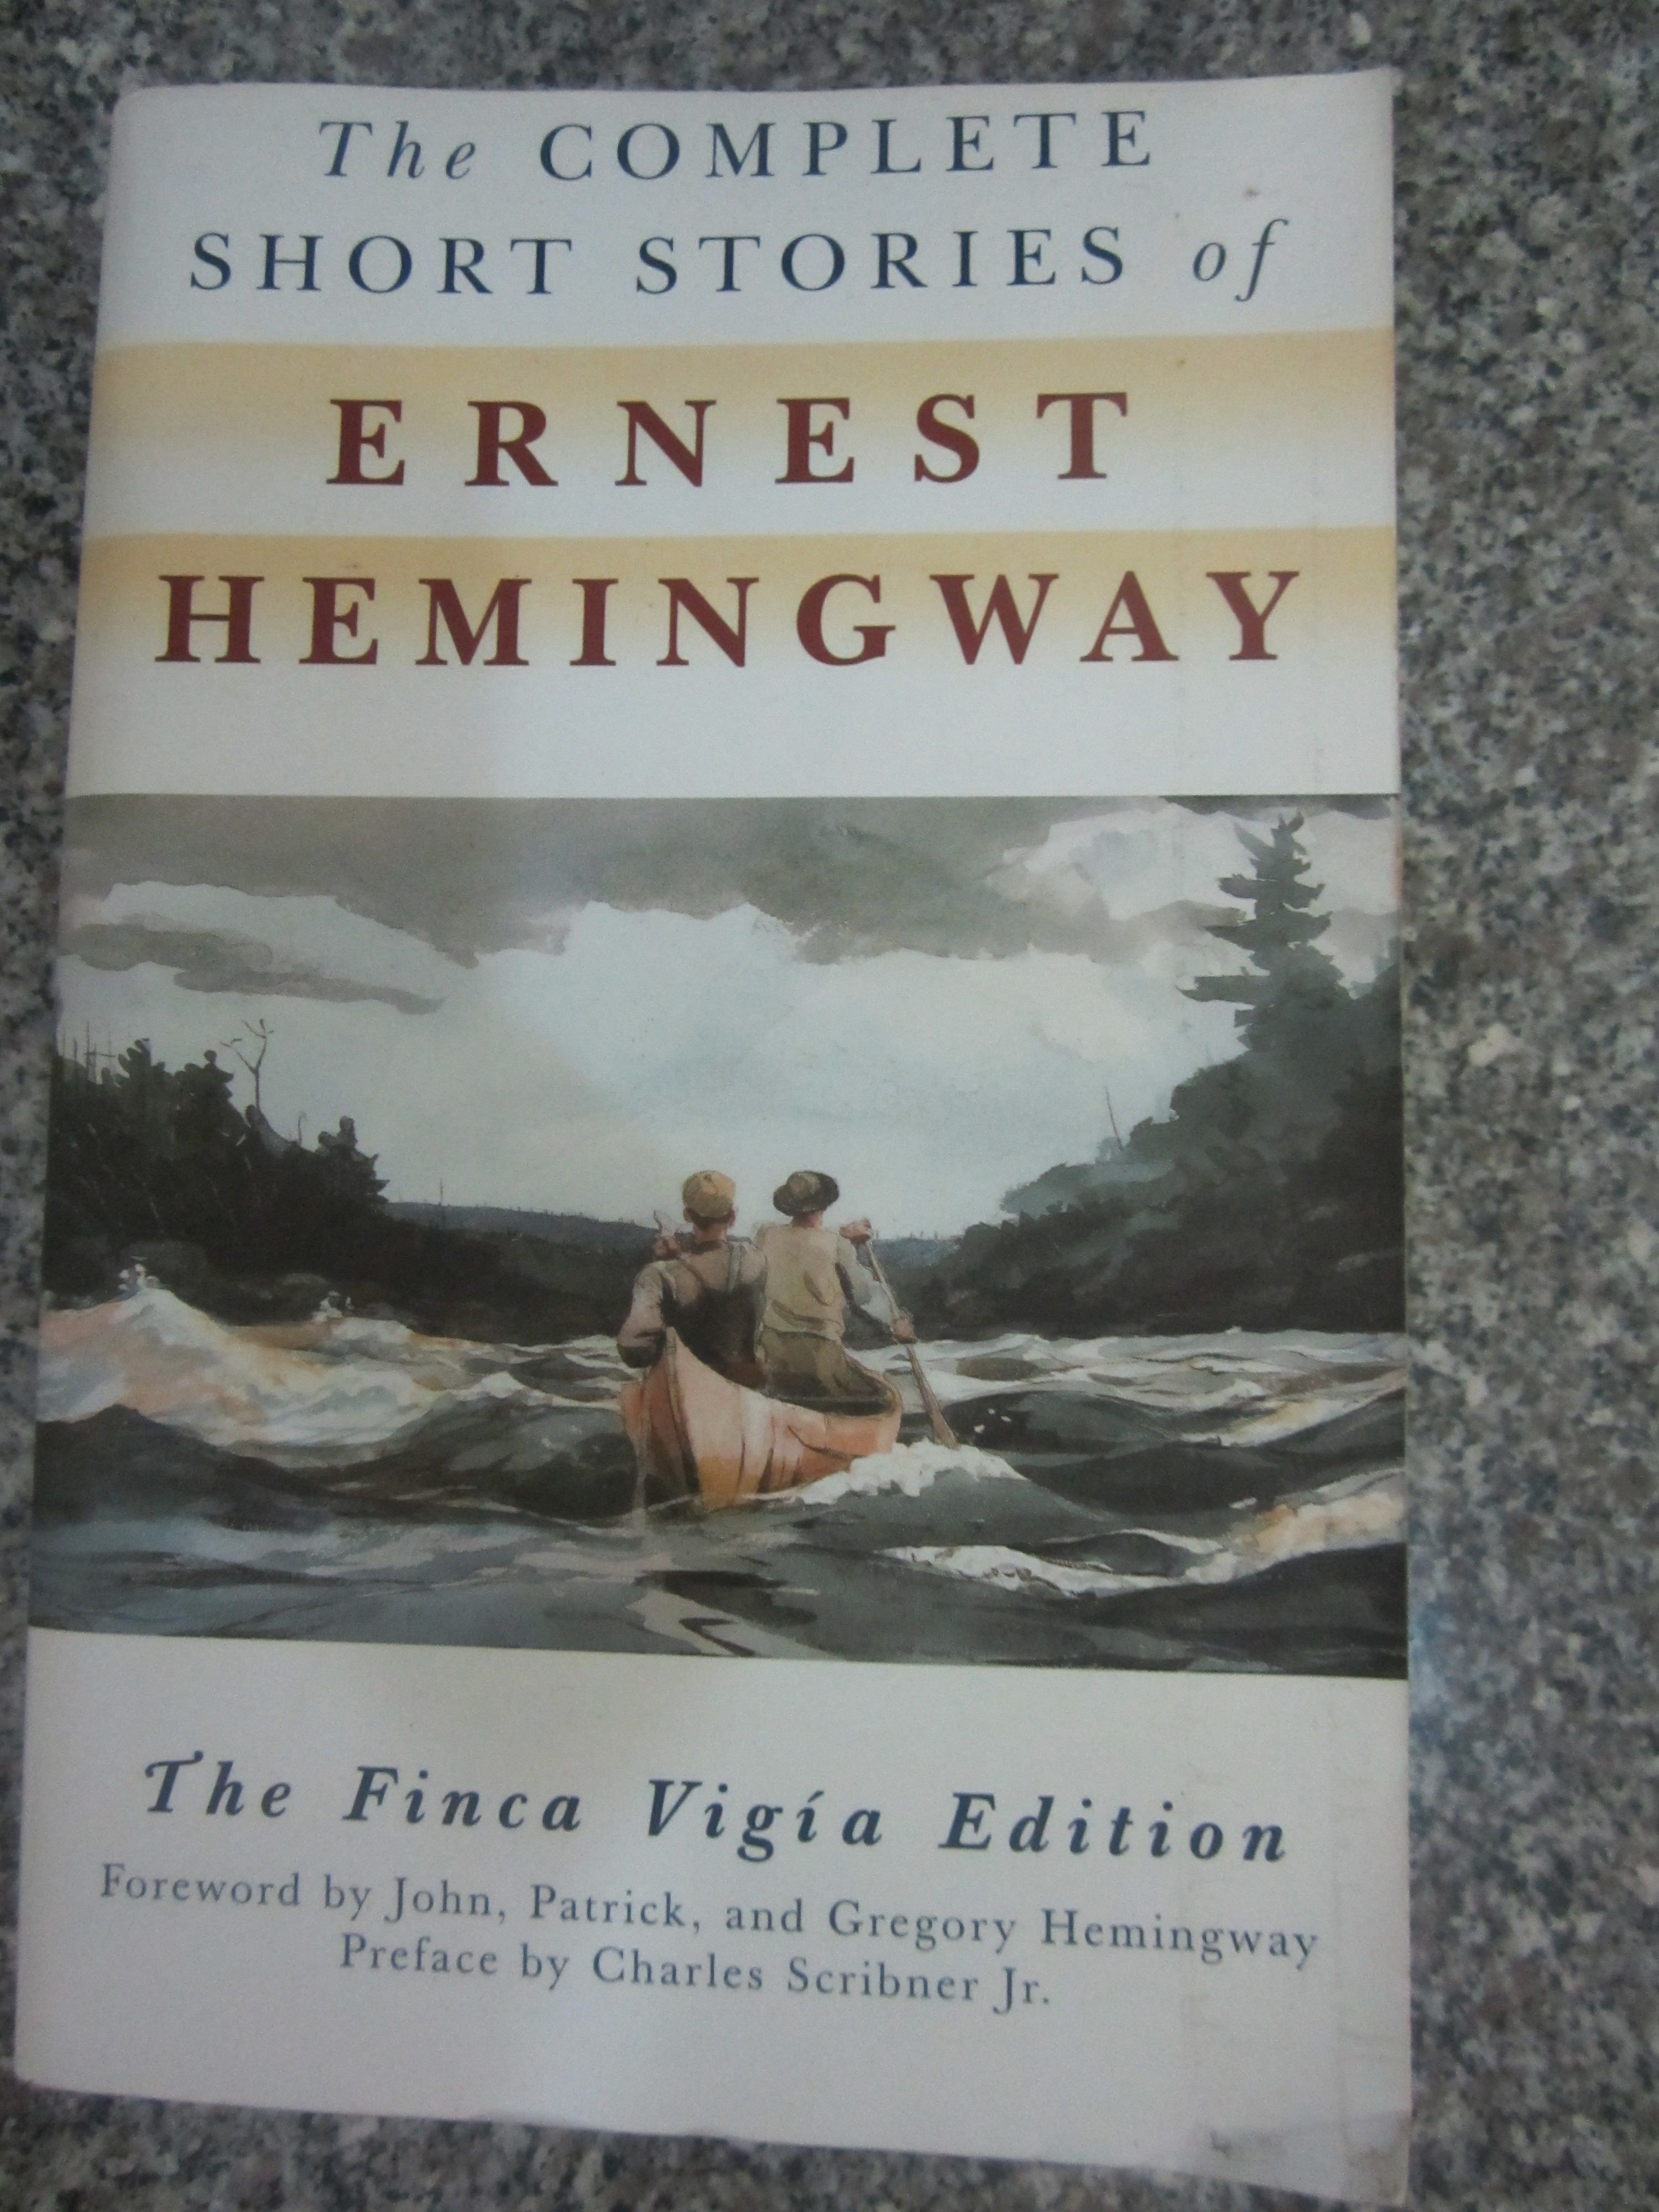 the life and stories of ernest hemingway Ernest miller hemingway (july 21, 1899 – july 2, 1961) was an american novelist, short story writer, and journalist his economical and understated style—which he termed the iceberg theory—had a strong influence on 20th-century fiction, while his adventurous lifestyle and his public image brought him admiration from later generations.